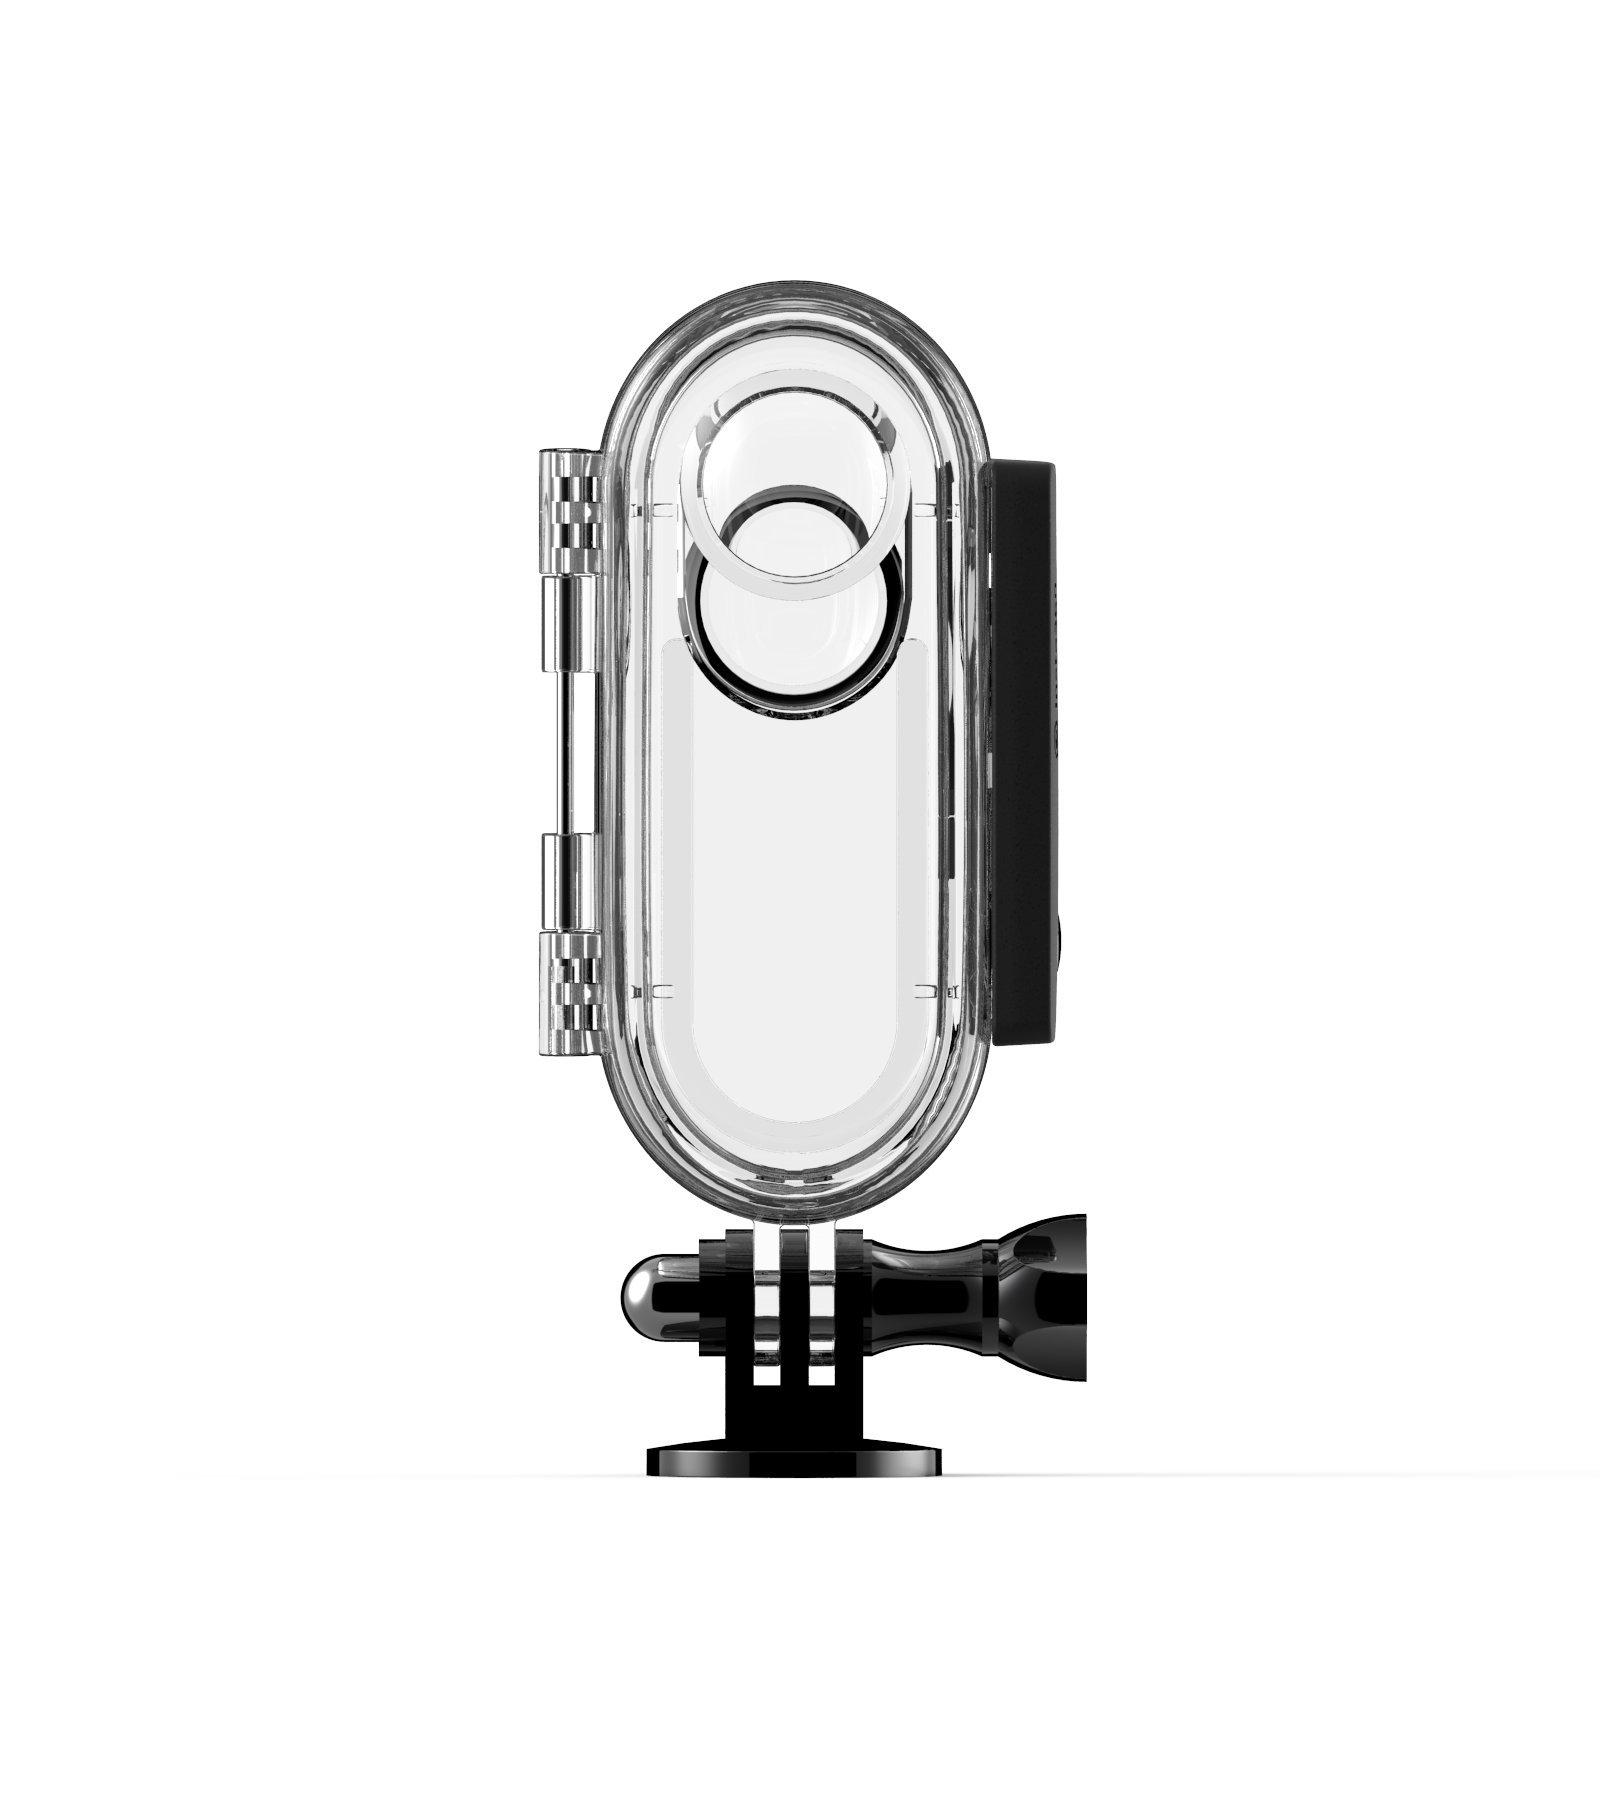 Insta360 Waterproof Casing for Insta360 ONE Action Camera, Transparent, compact - CINONWP/A